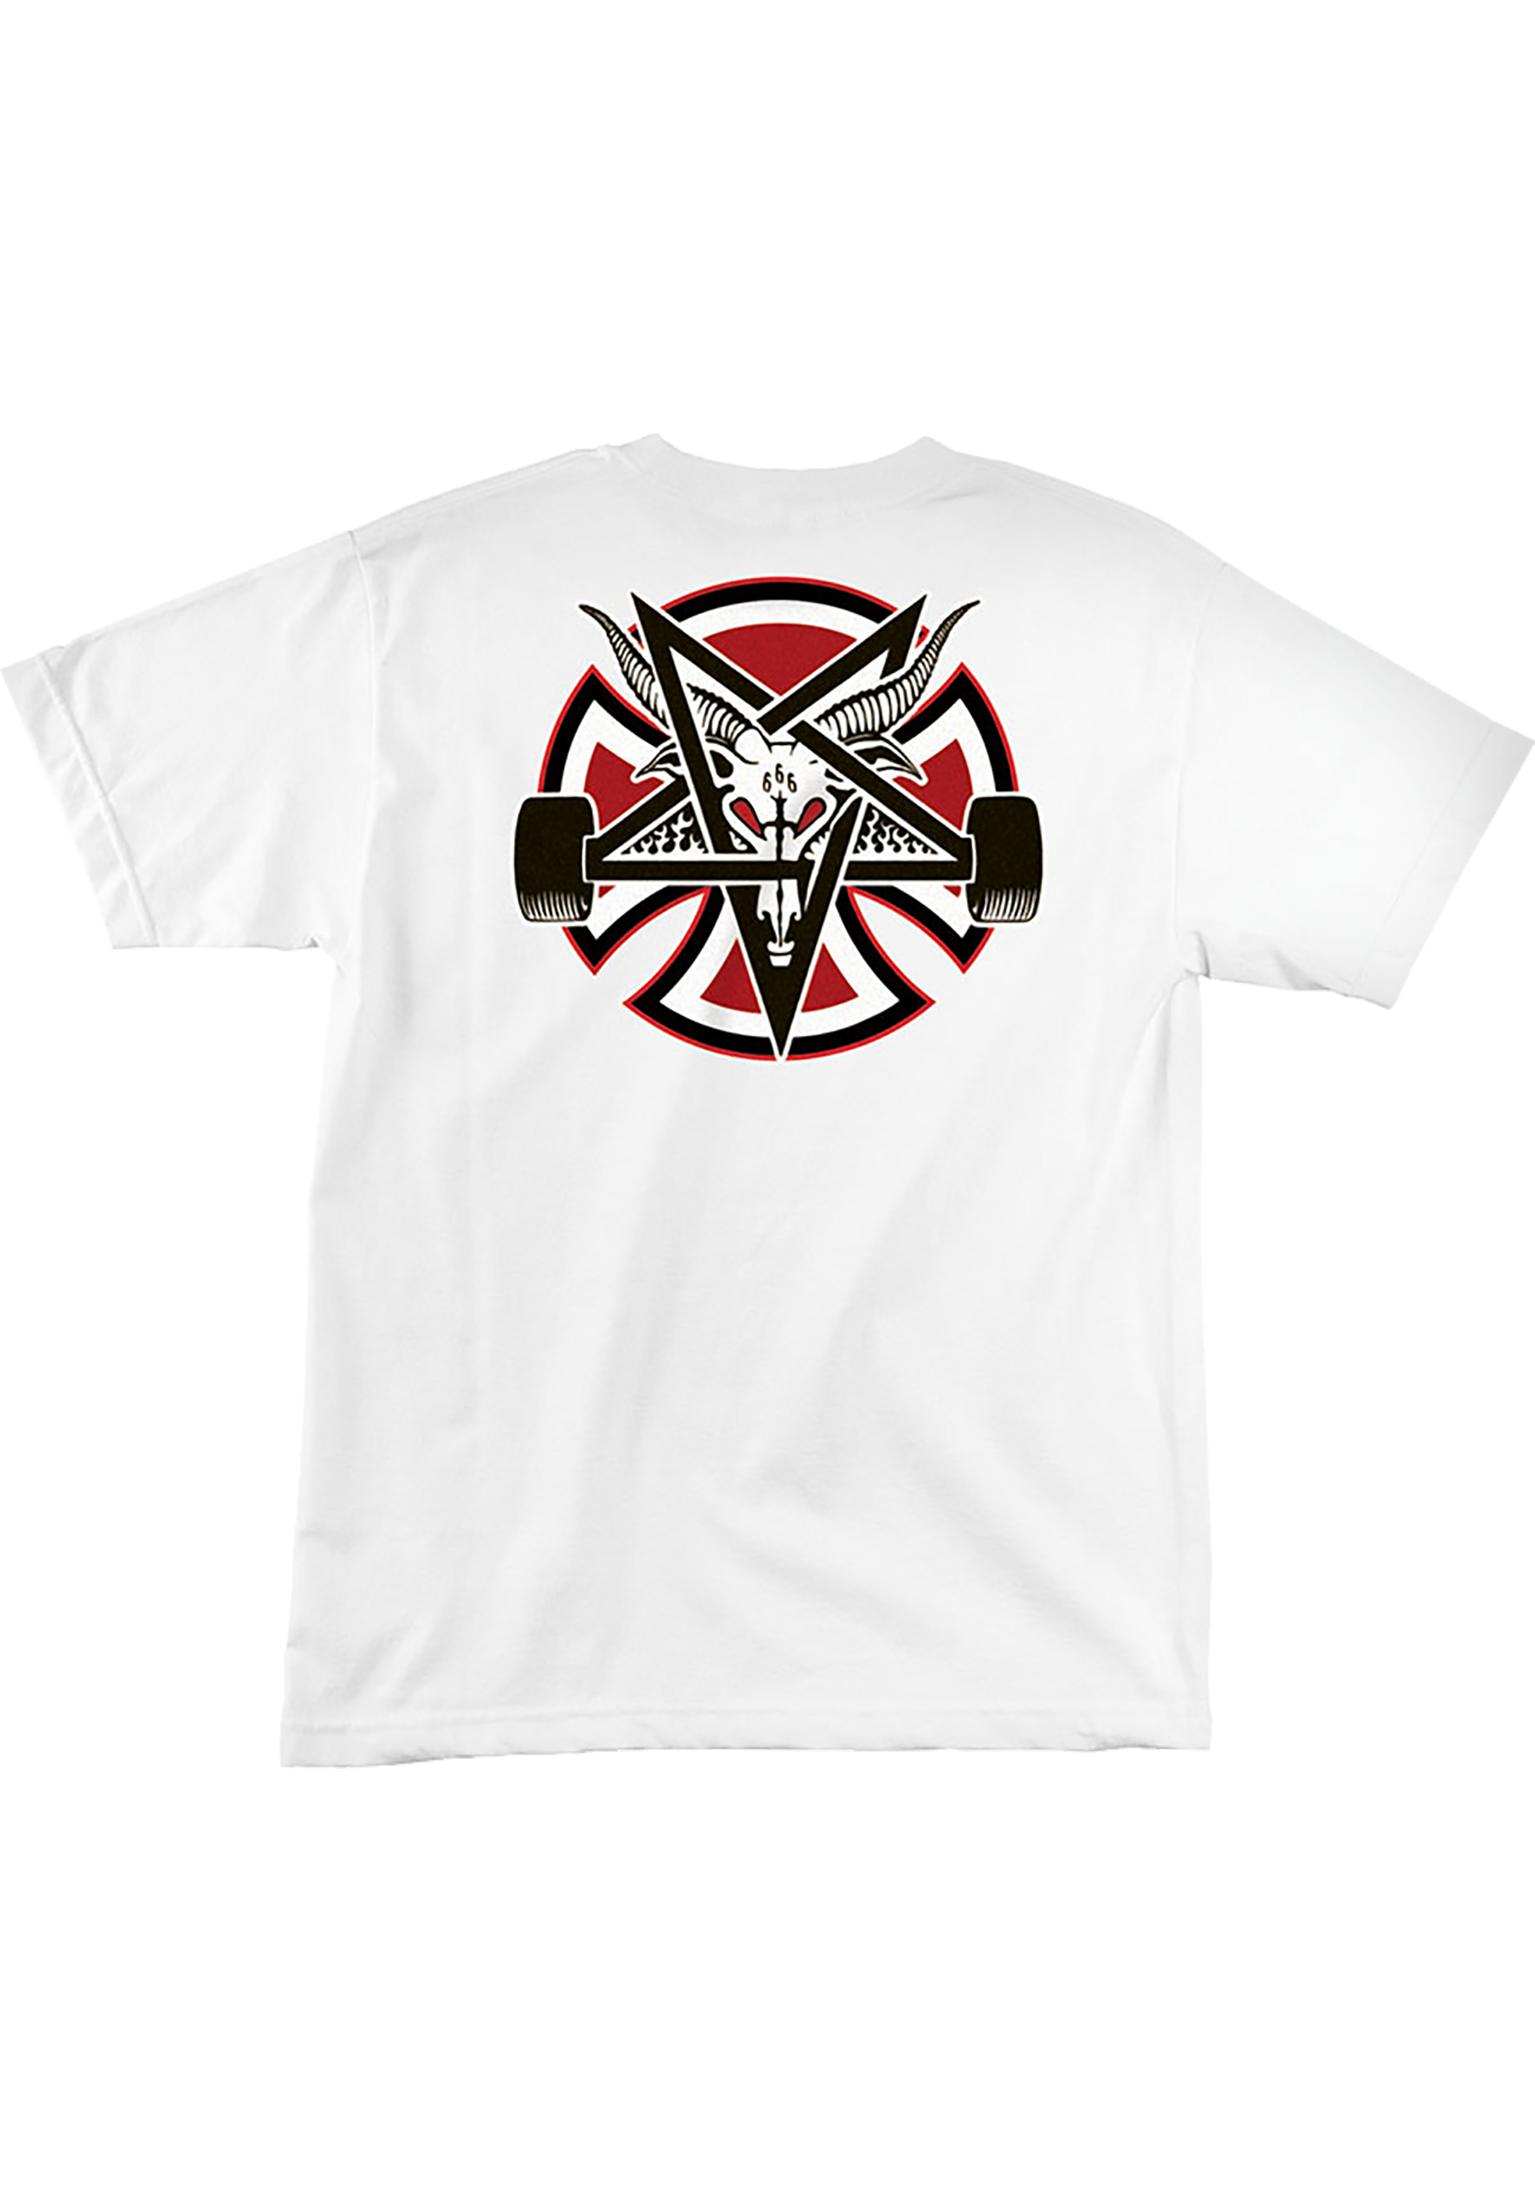 Titus_Muenchen_independent-t-shirt-thrasher-pentagram-cross-white-0398637_back.jpg